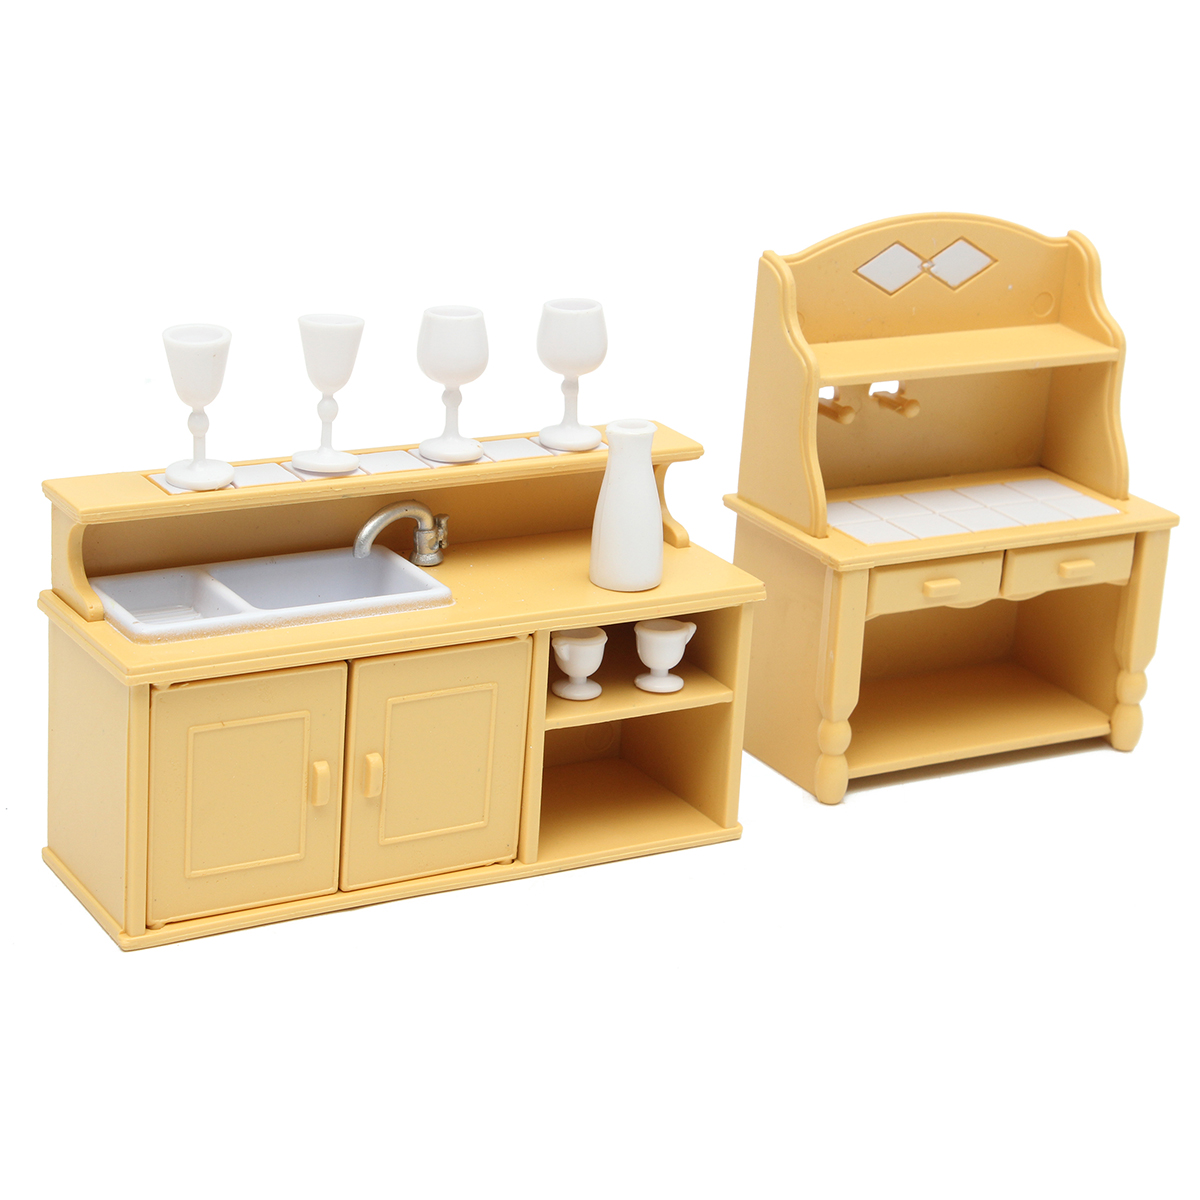 puppenhaus m bel spielk che kinder spielzeugk che holzk che spielzeug k che ebay. Black Bedroom Furniture Sets. Home Design Ideas